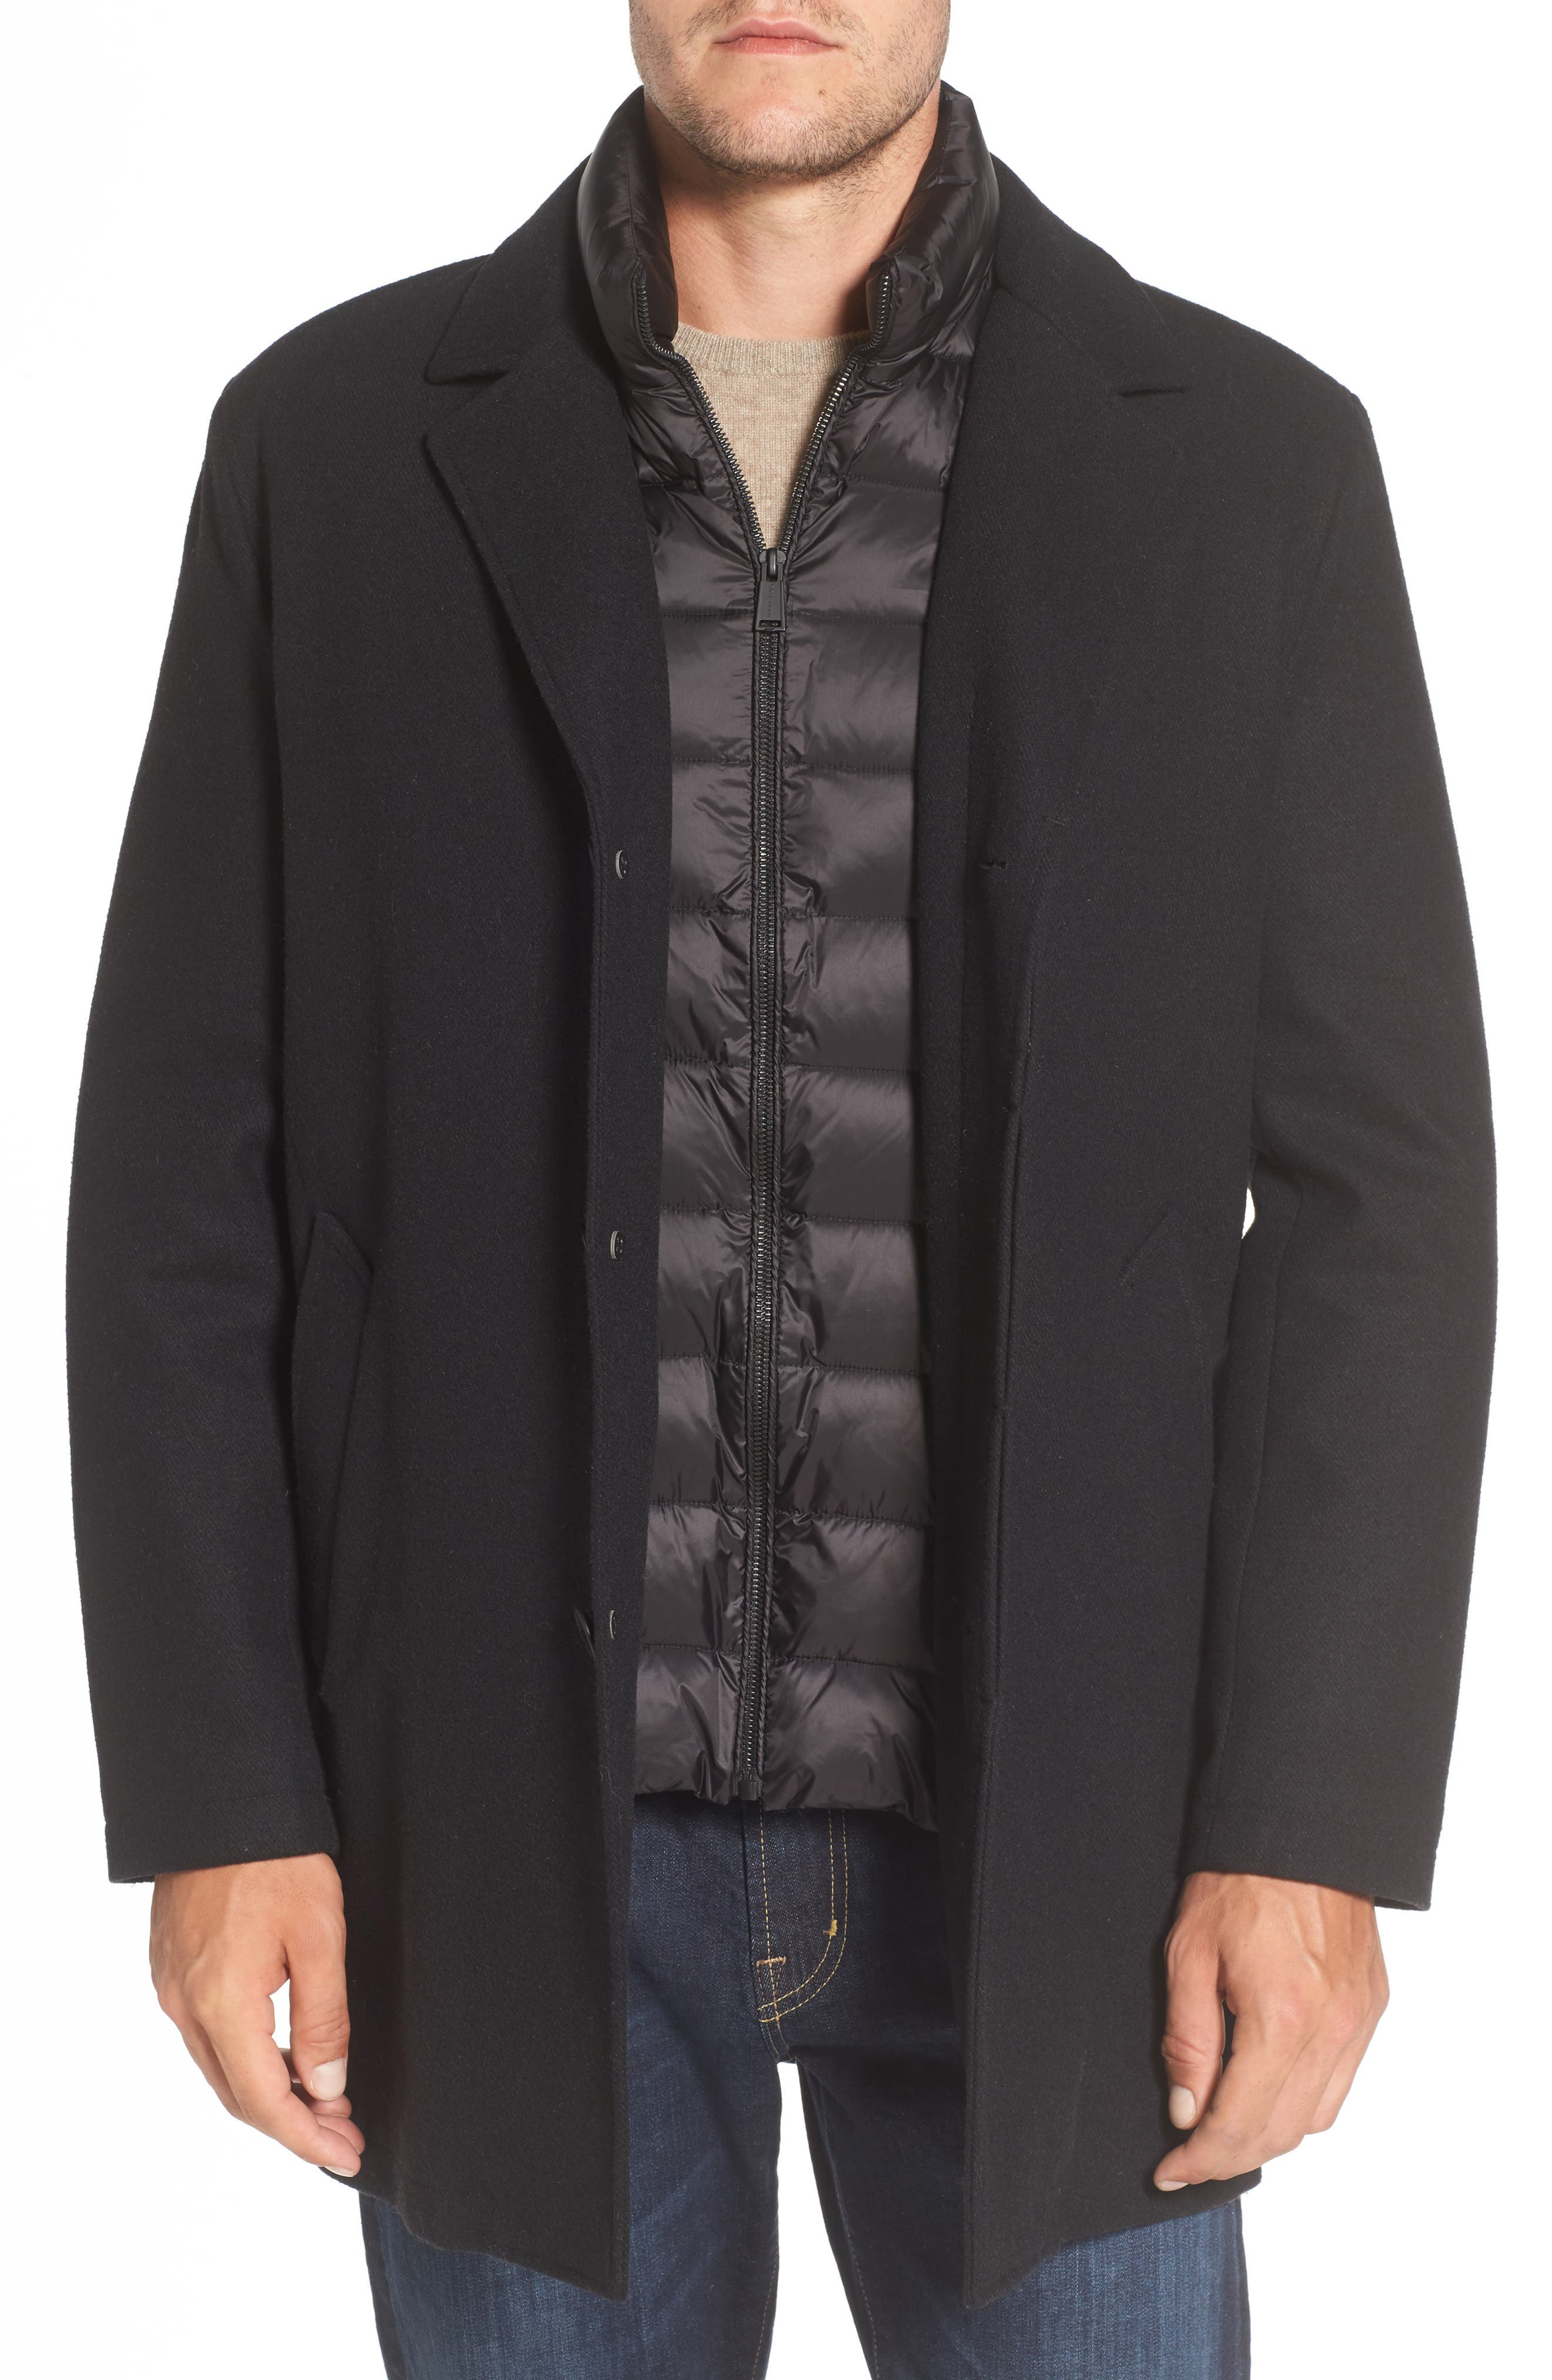 Water Repellent Jacket with Inset Bib & Faux Fur Lining,                         Main,                         color, Black